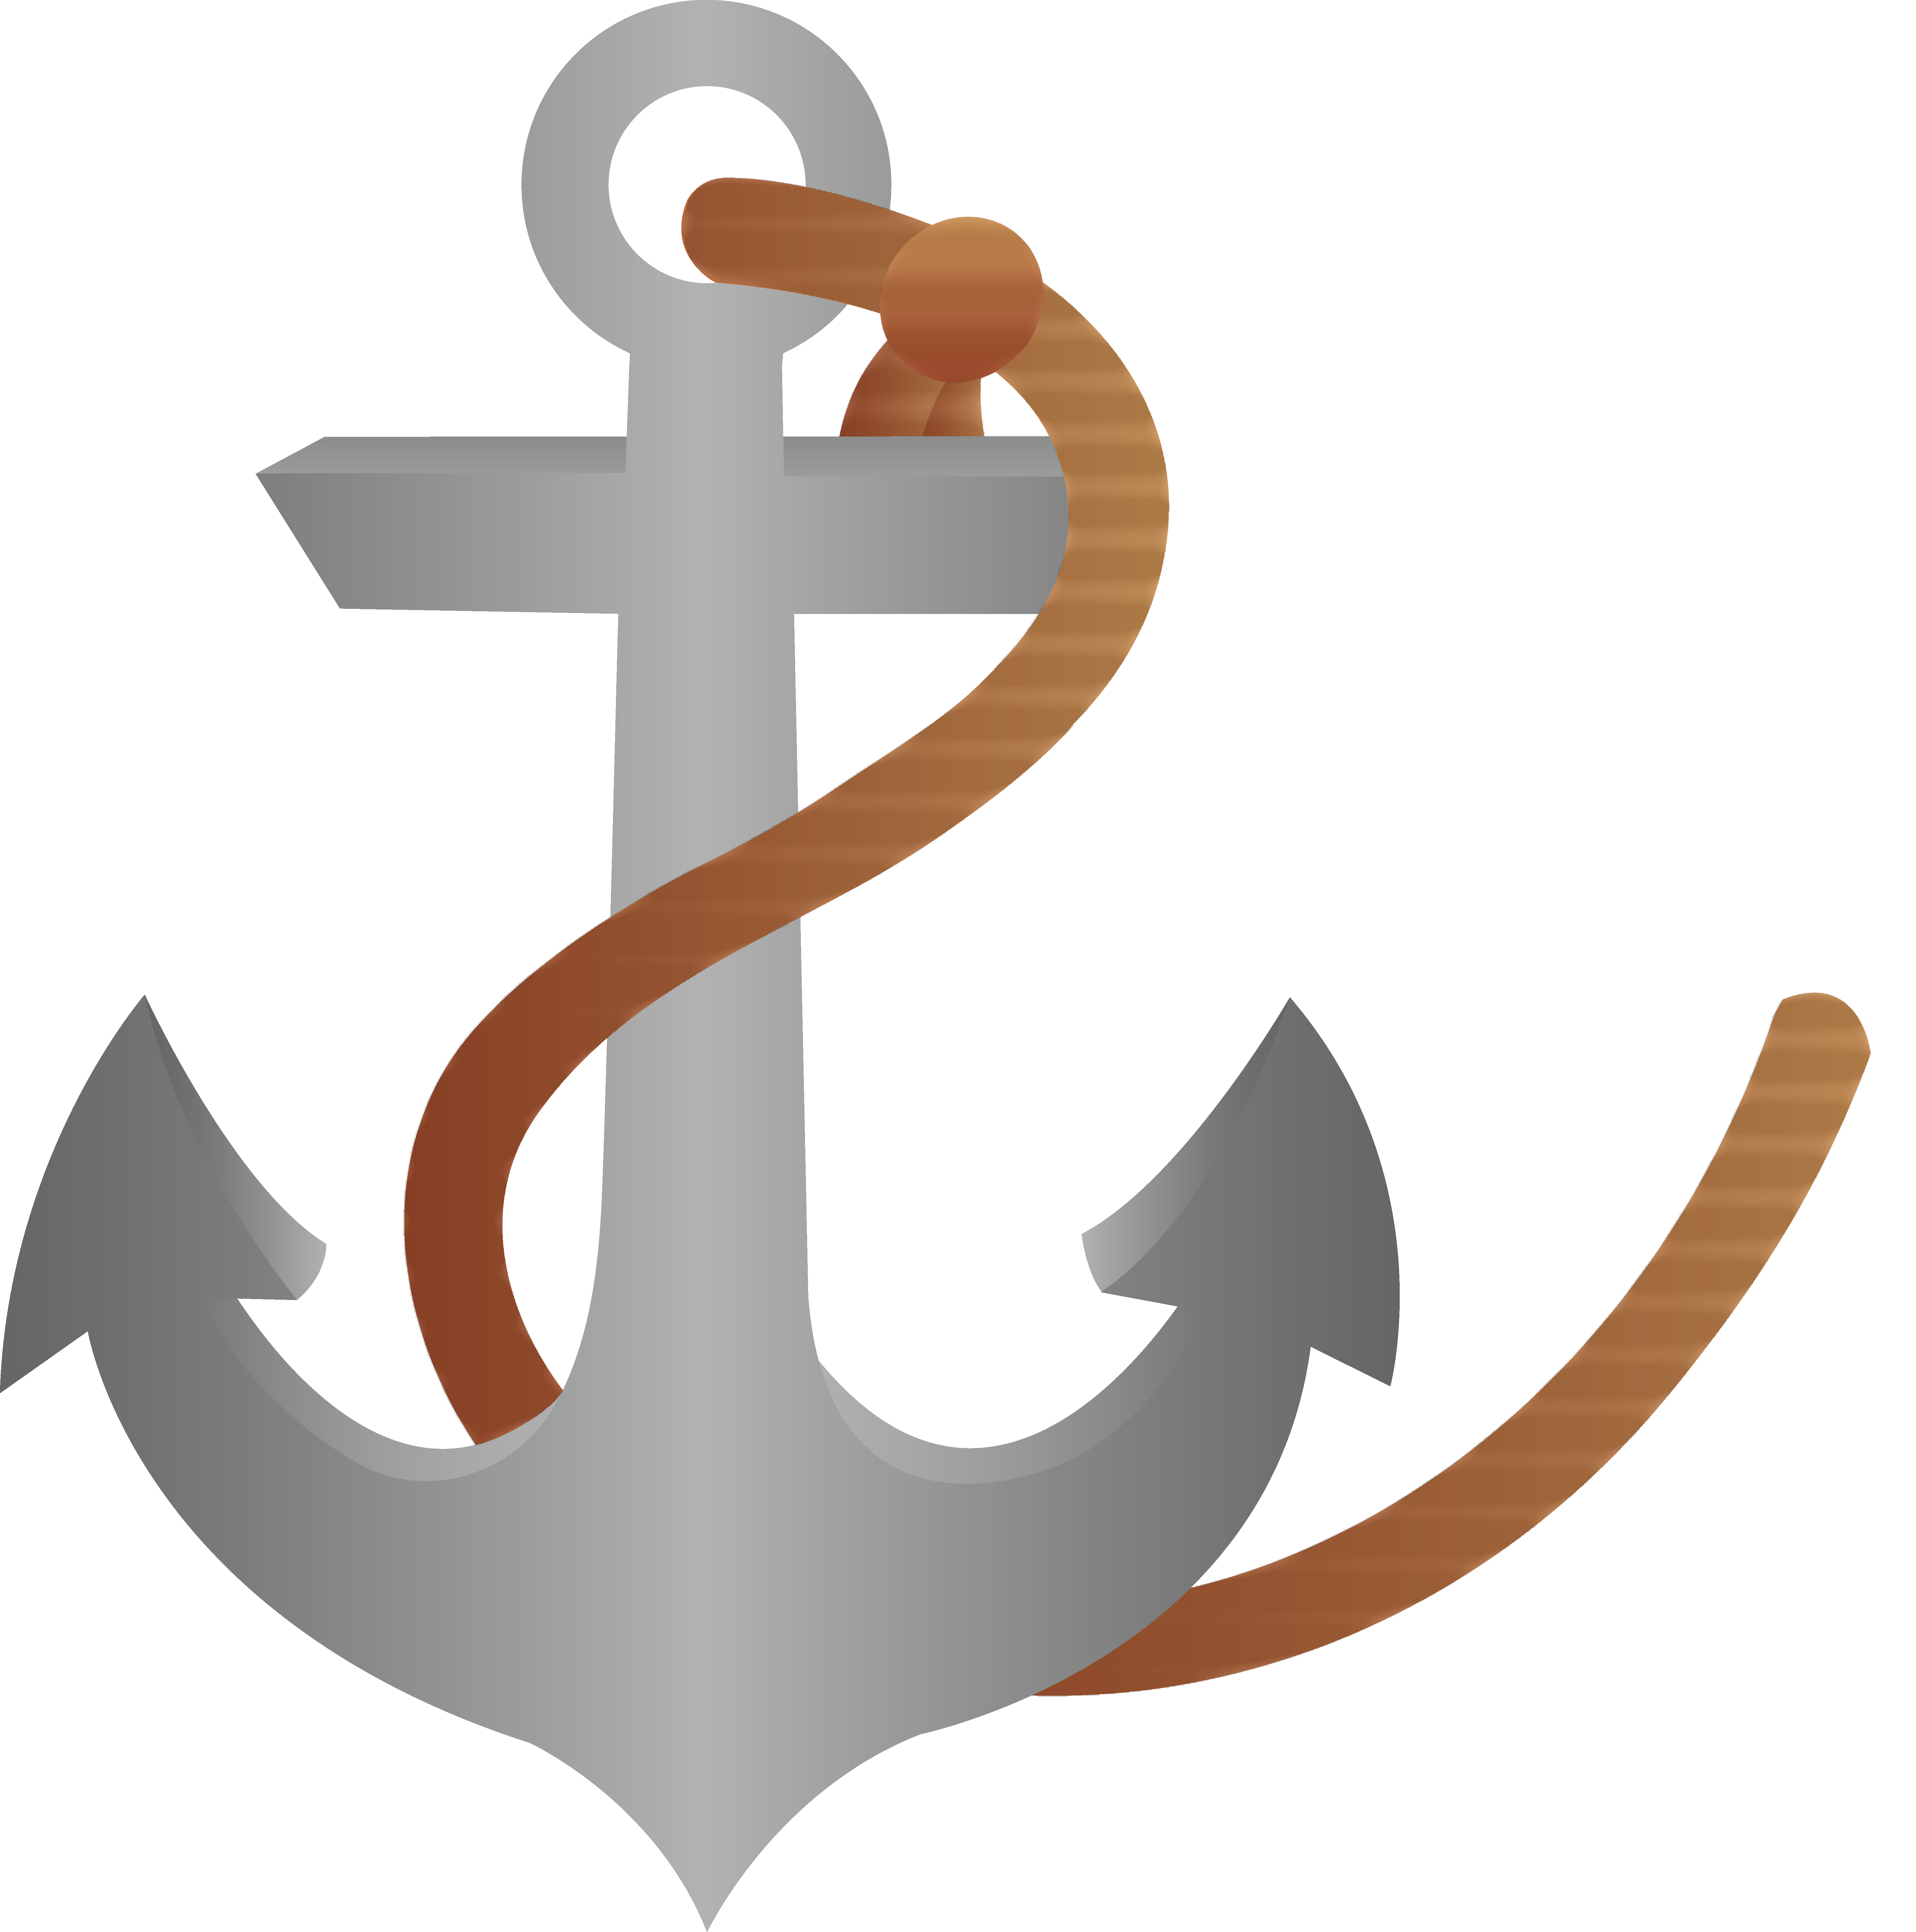 image royalty free stock Ship anchor with rope. Vector anchors illustrator